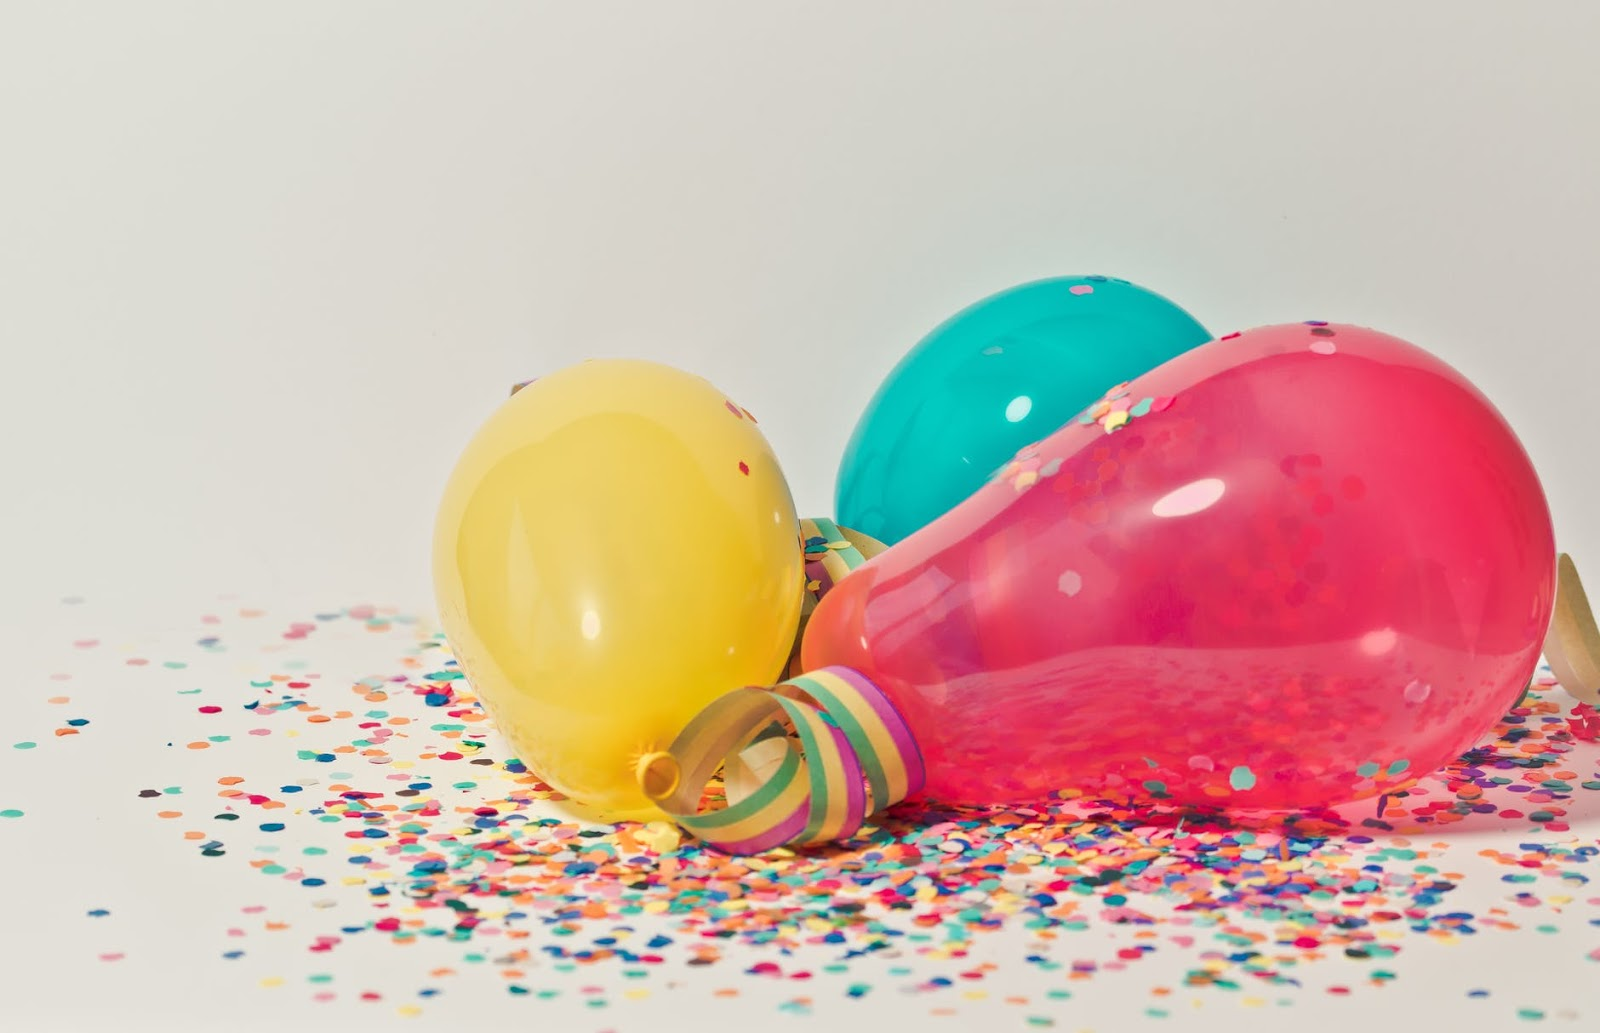 Balloons and confetti on the ground